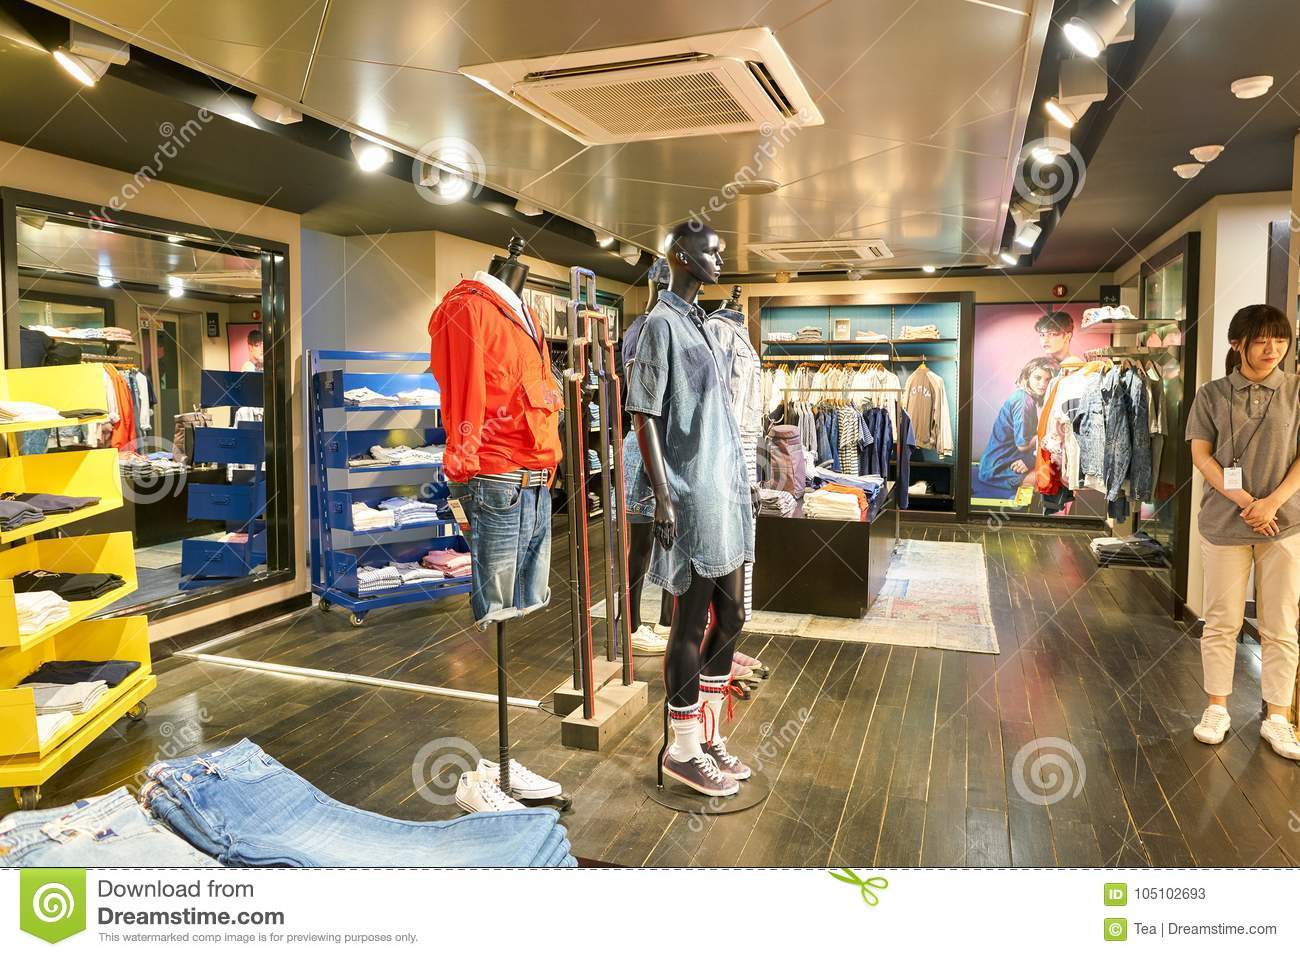 78673573 SEOUL, SOUTH KOREA - CIRCA MAY, 2017: inside a Tommy Hilfiger store in  Seoul.